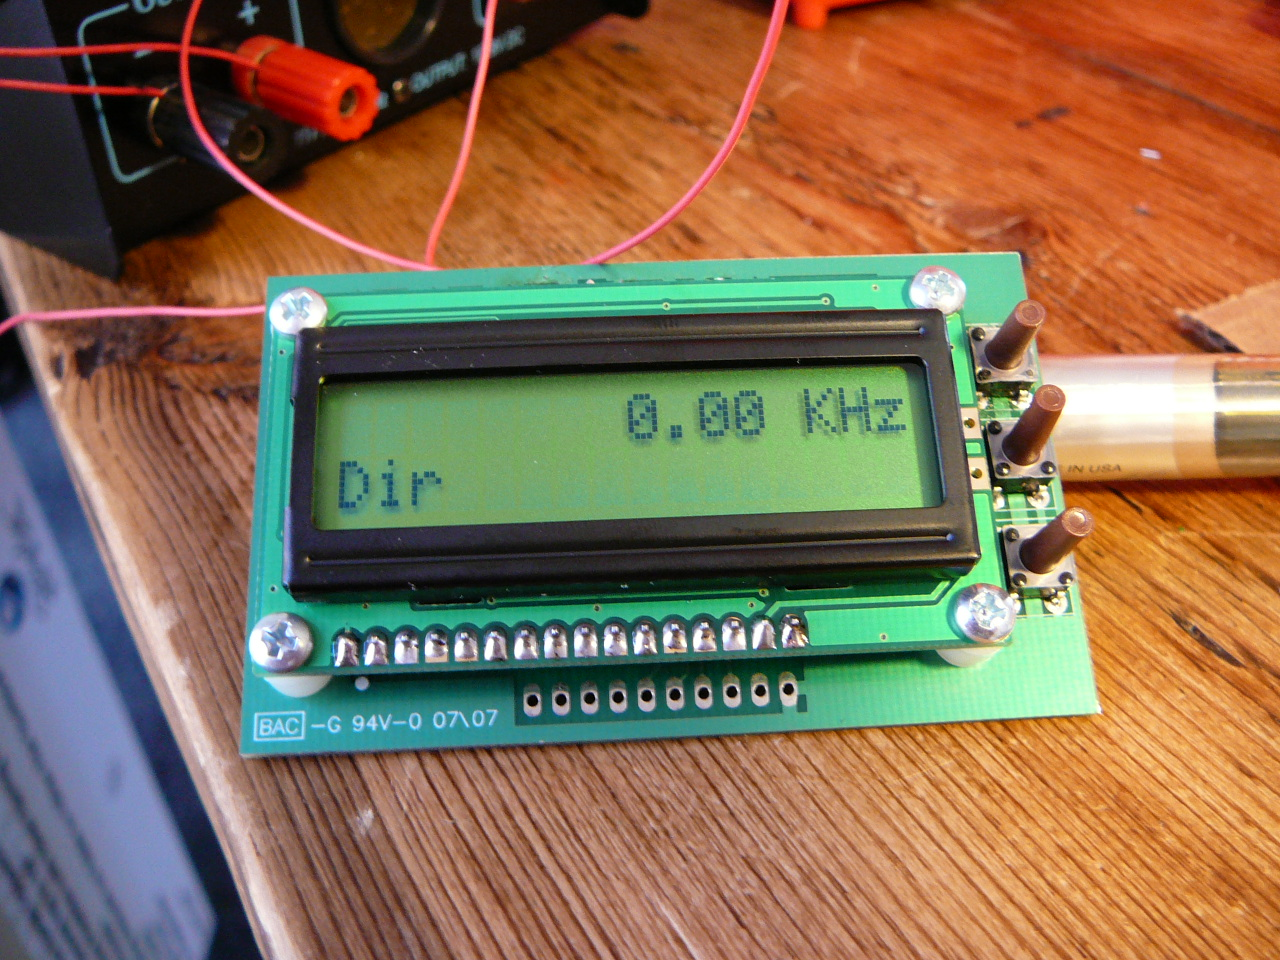 Fcc 1 Assembled Brainwagon Pic16f84 Circuit For Lcd Nokia Frequency Counter